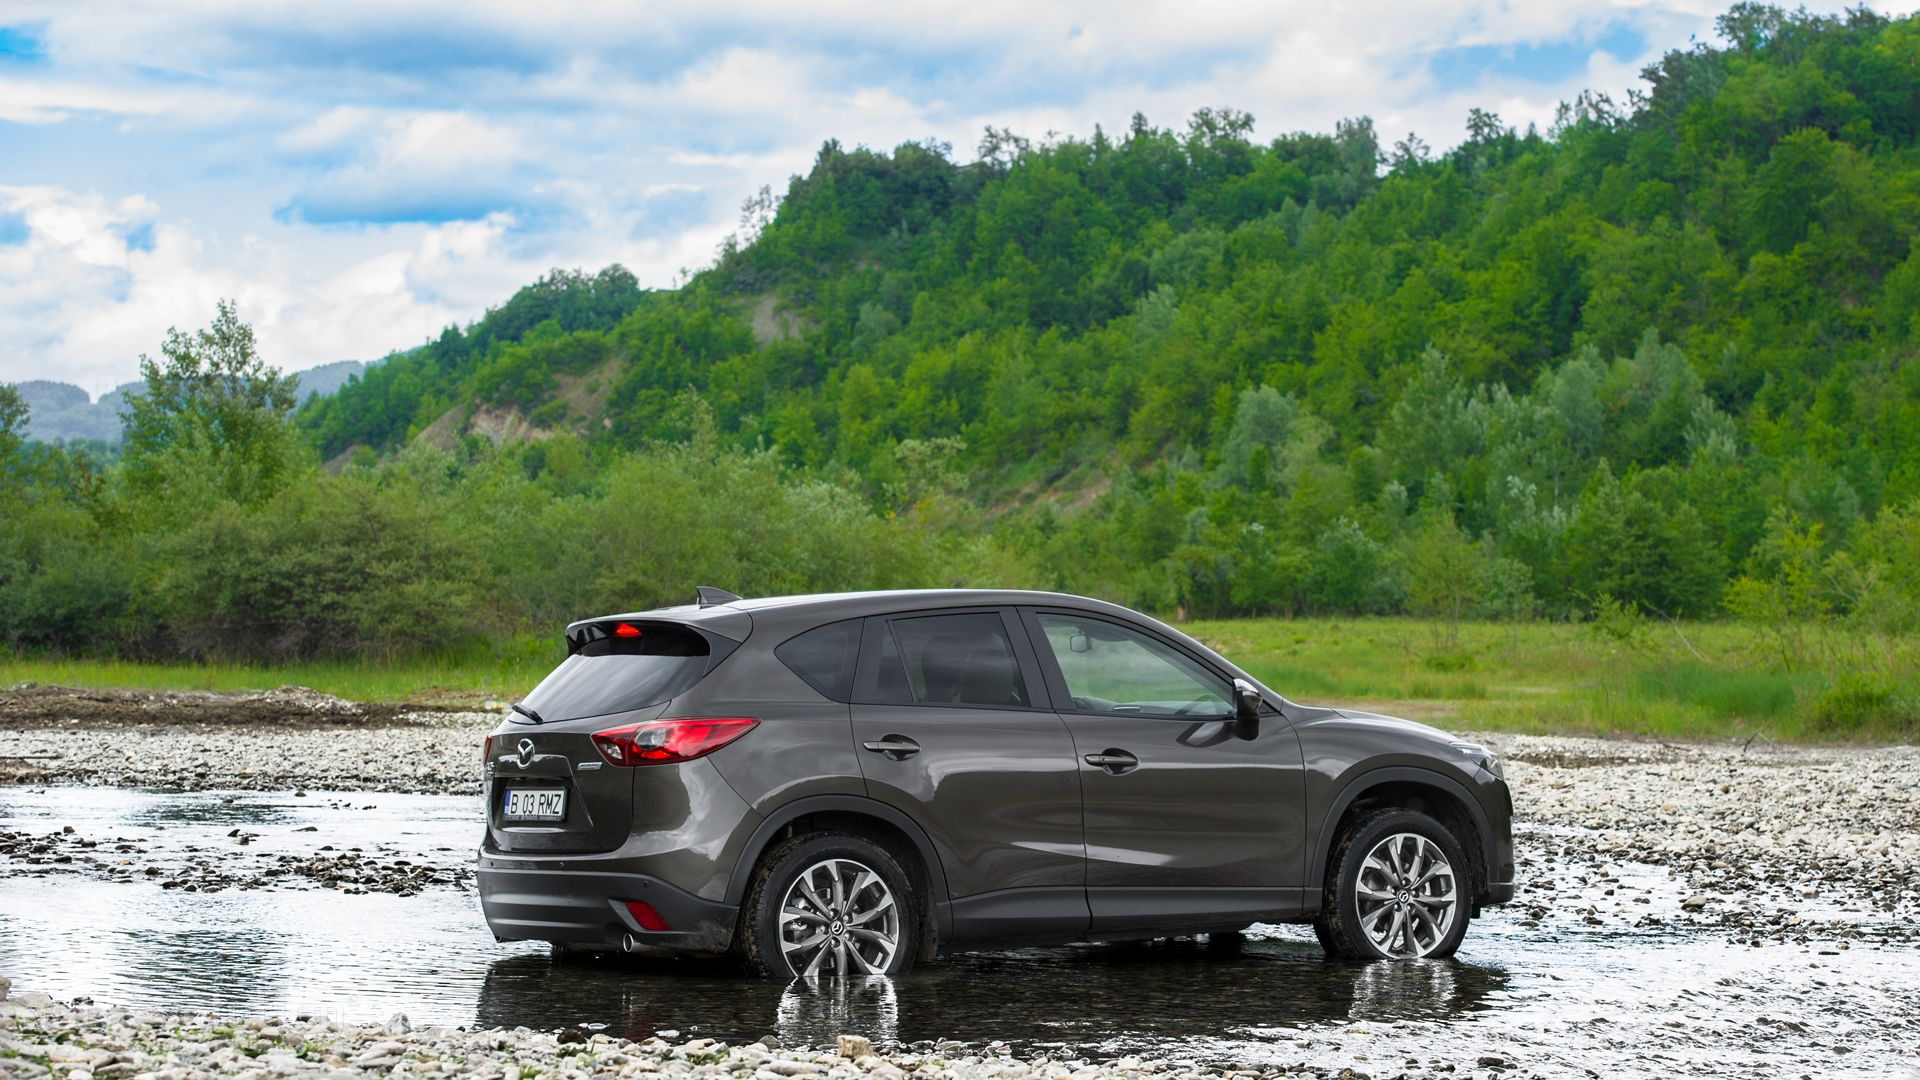 1920x1080 - Mazda CX-5 Wallpapers 5